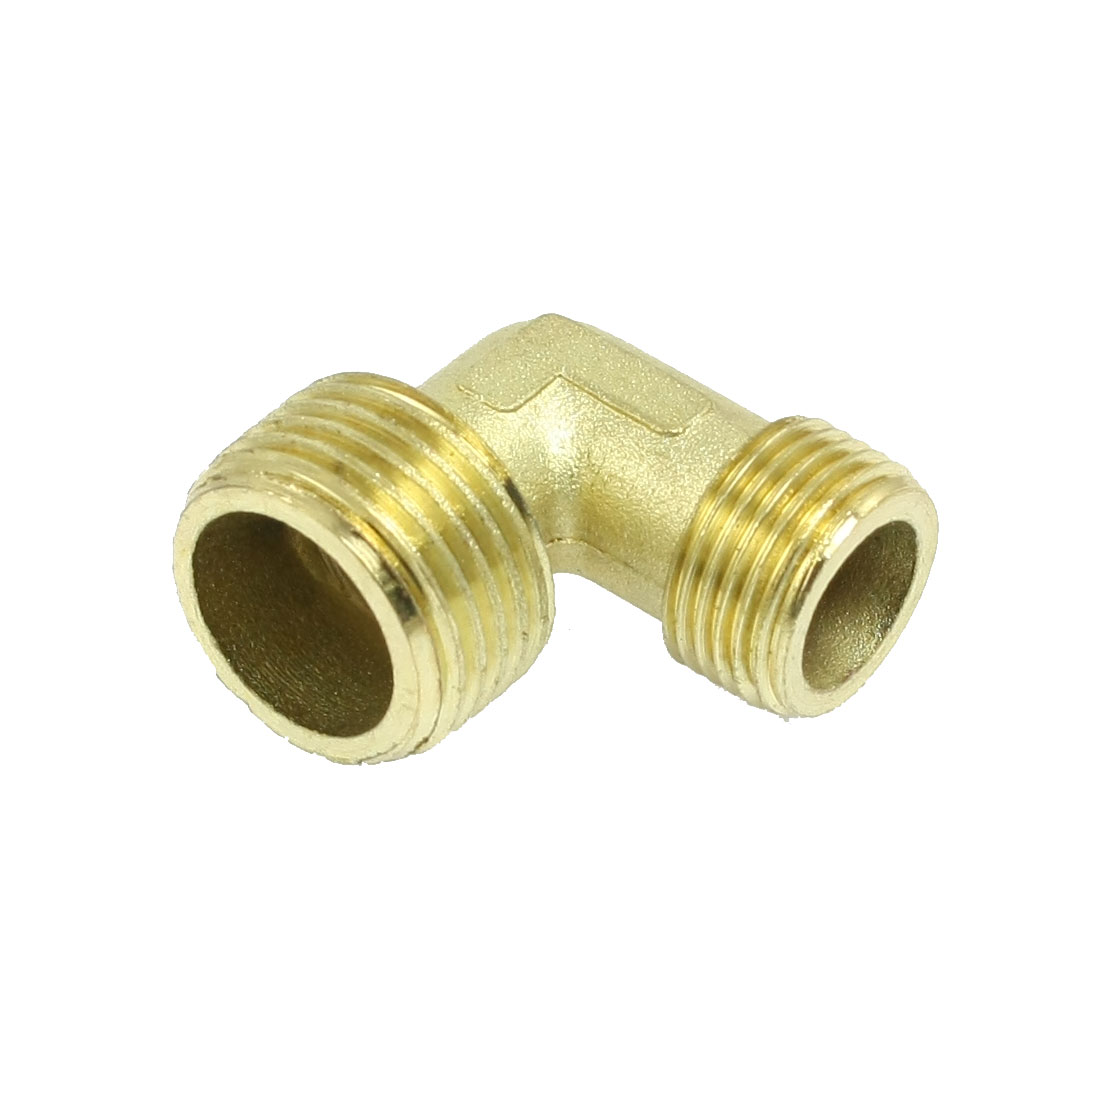 "Air Compressor 3/8"" x 1/2"" Male Elbow 90 Degree Connector"